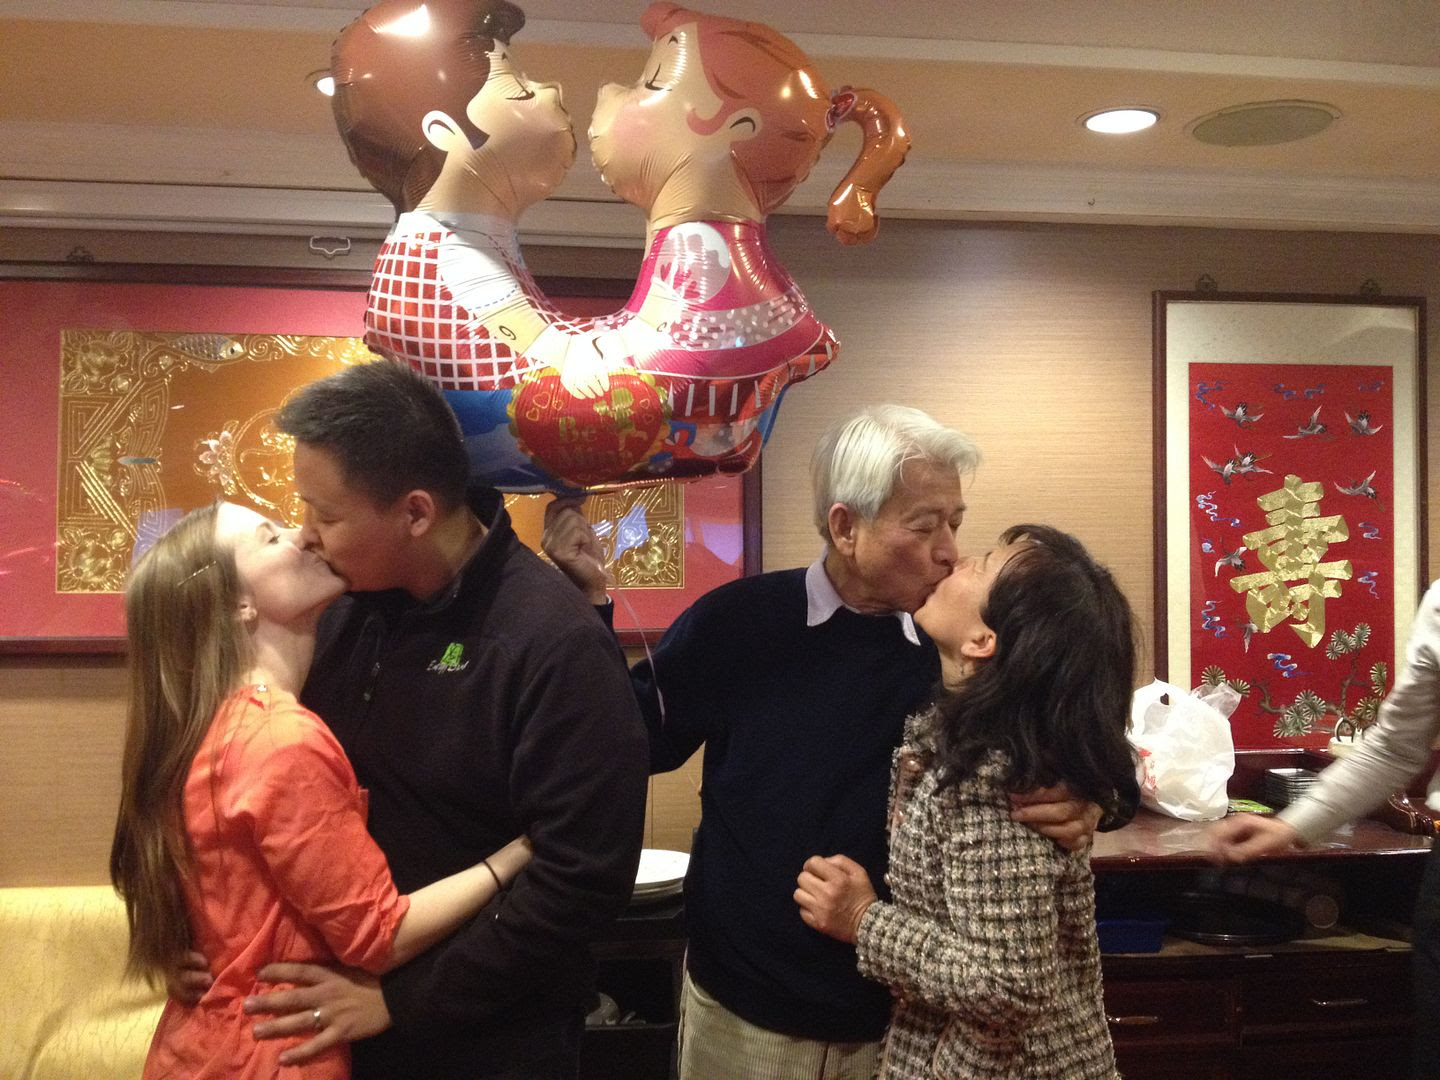 Kissing Balloon photo 2013-12-28143419_zpsedbd8710.jpg